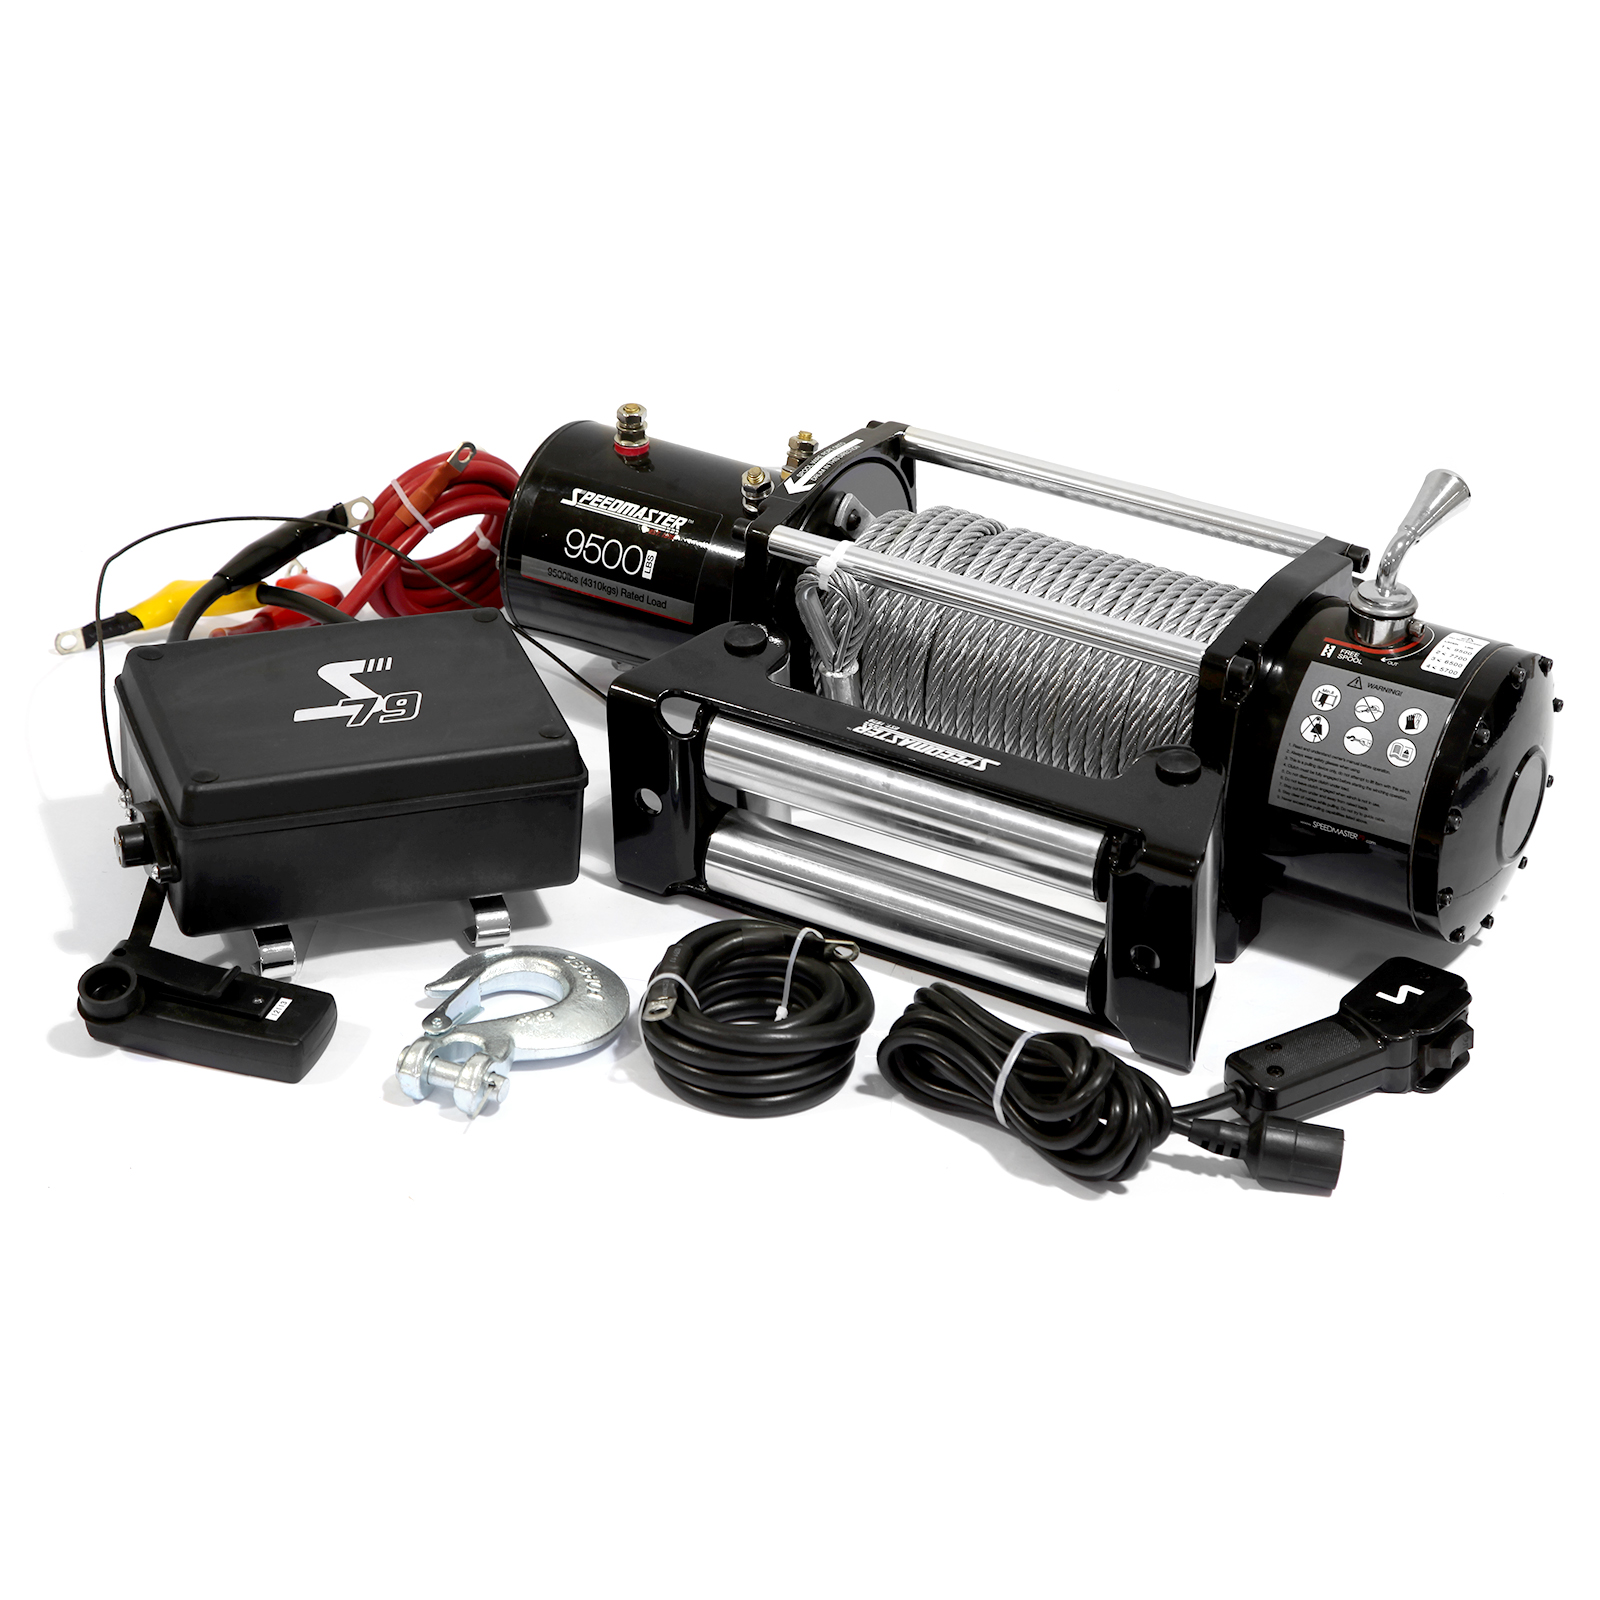 Speedmaster 9500lbs / 4310kgs 12V Electric 4wd Winch Kit w/ Wireless Remote